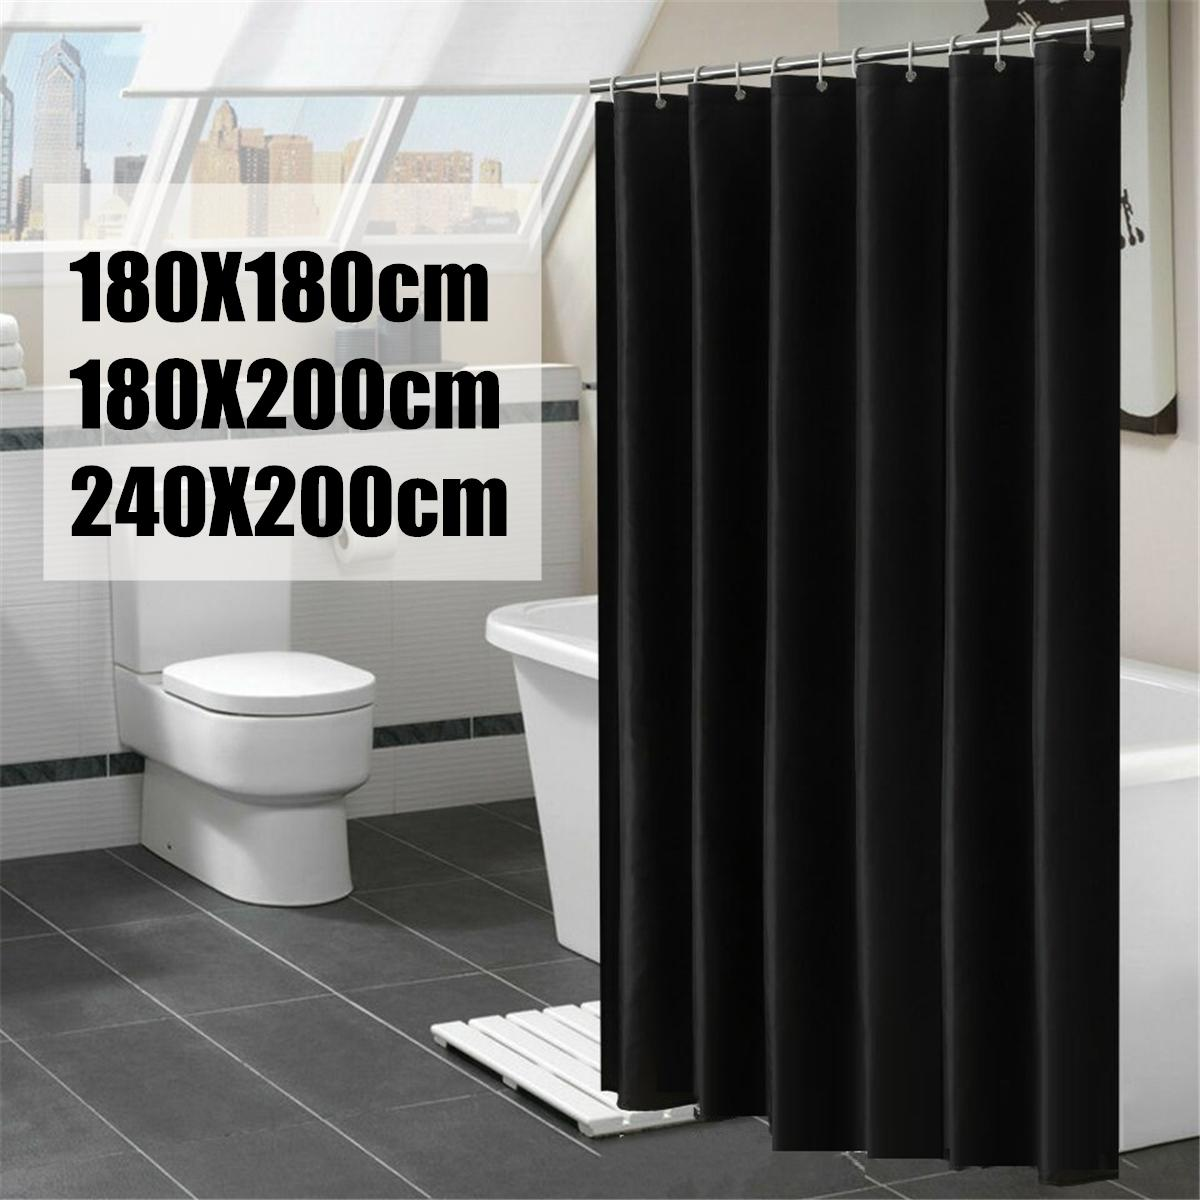 Plain Black Fabric Shower Curtain With Hook Rings Hangers 180 200cm